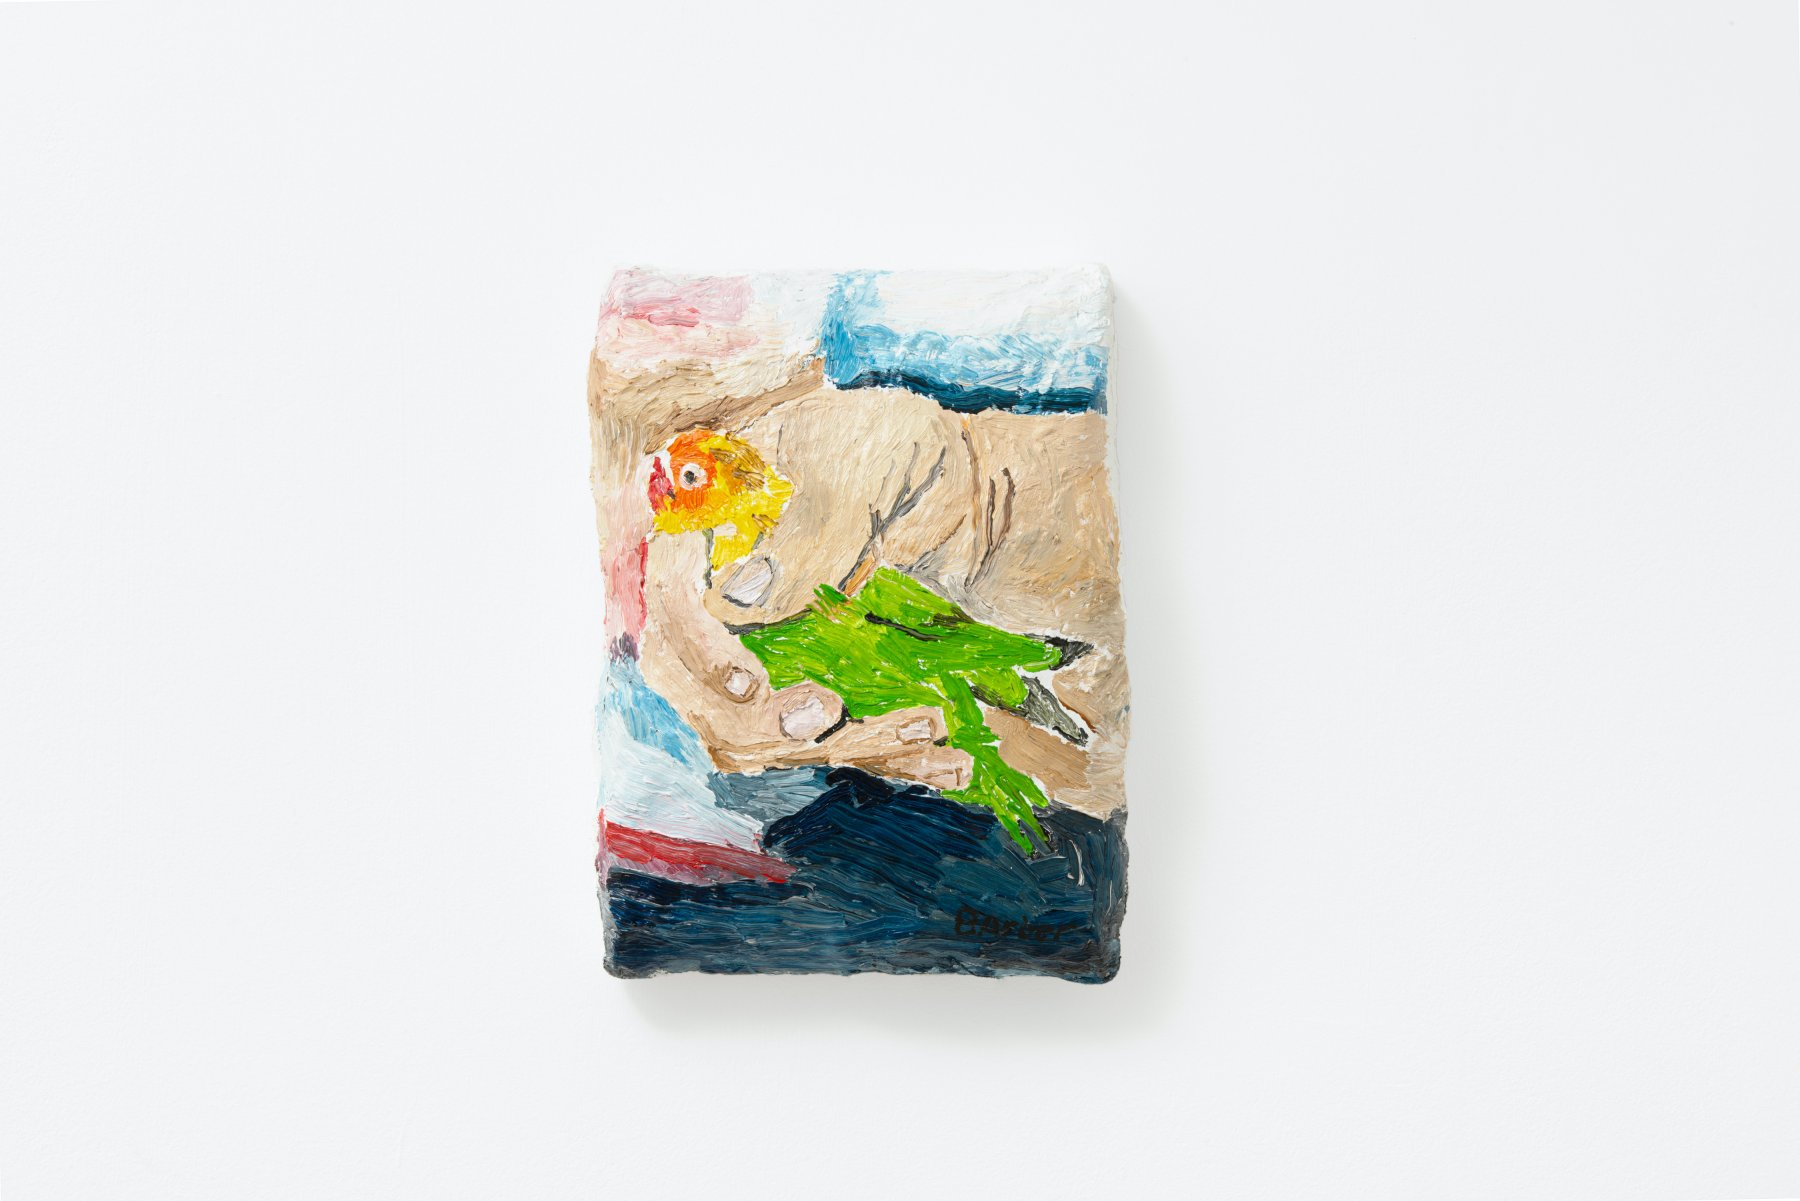 Sophie Barber, Mohamed Bourouissa Holds a Love Bird, 2021